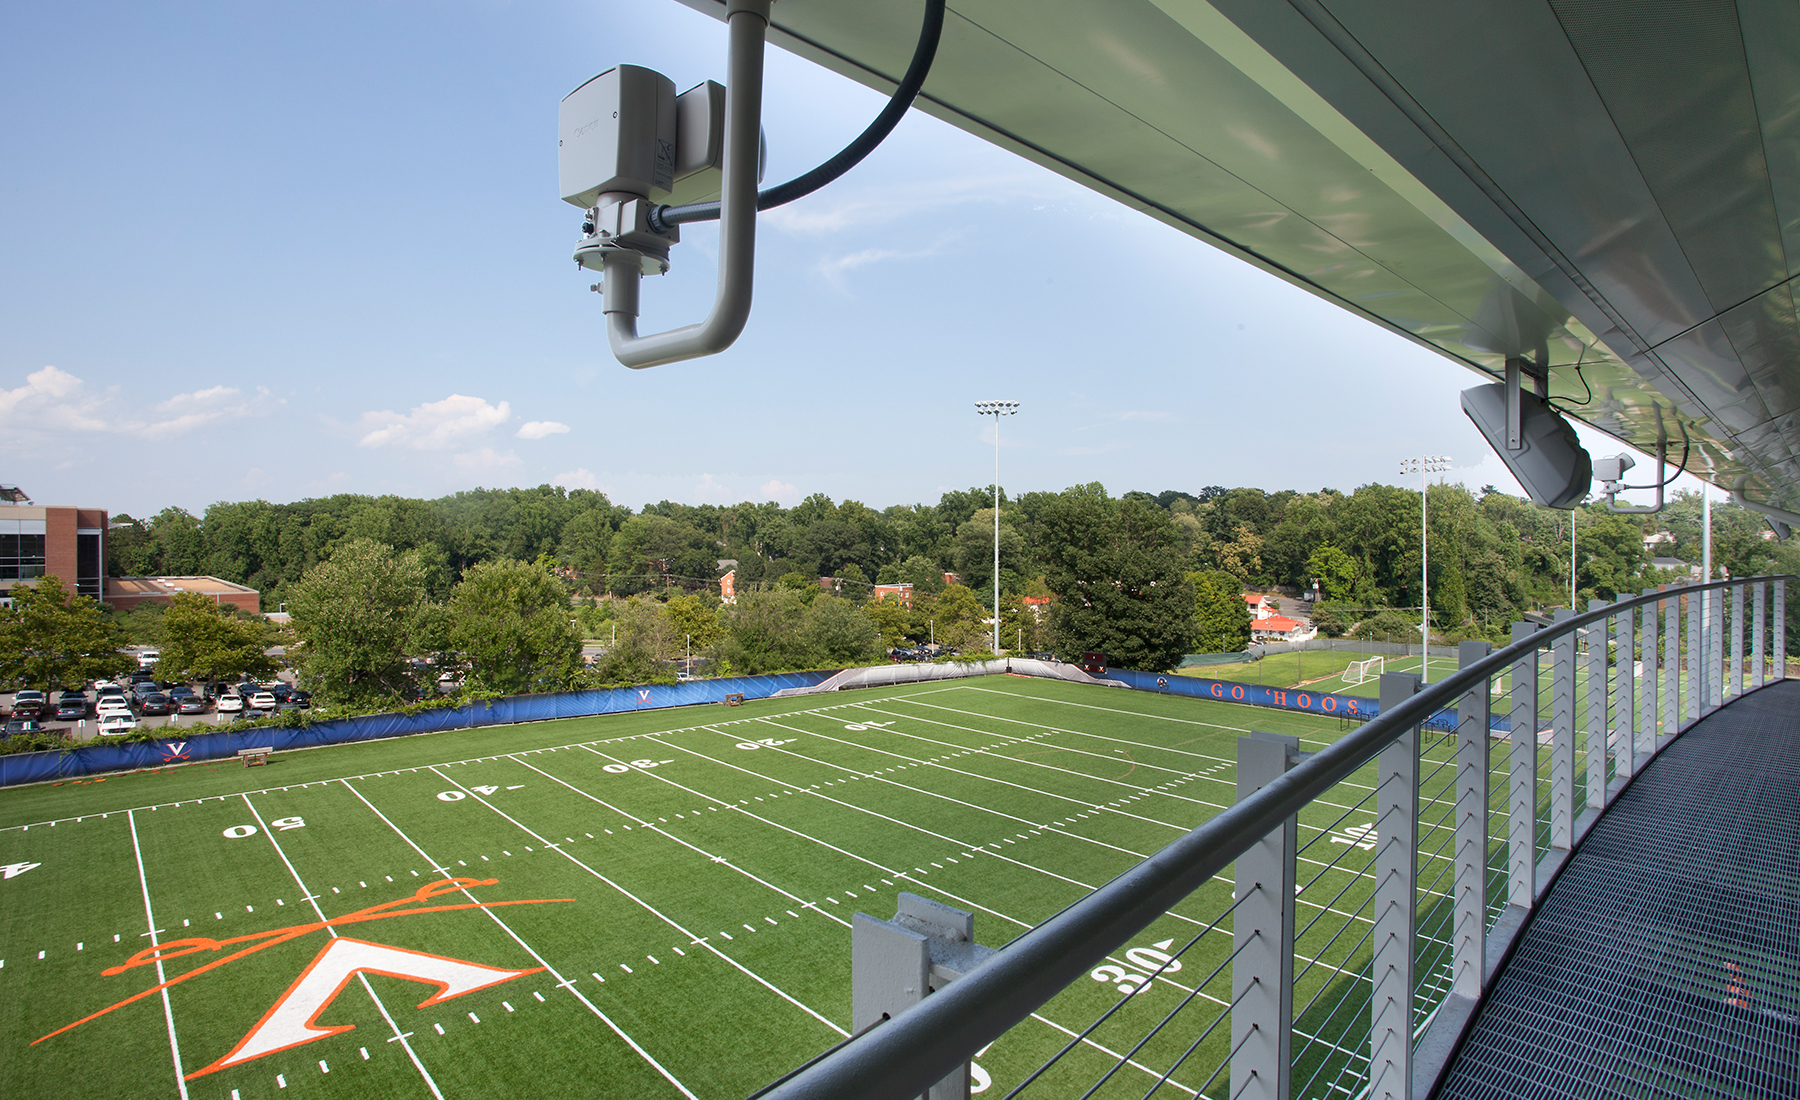 The single story, open volume facility features a small central platform for viewing by coaches and filming.